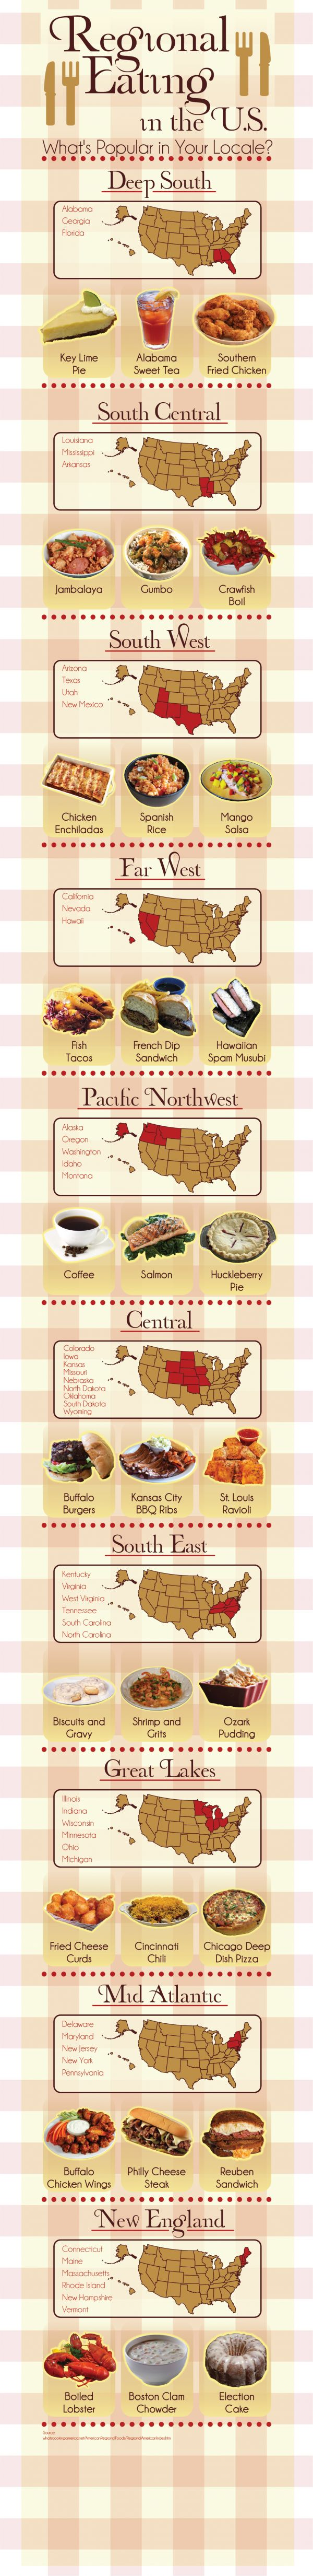 Regional Eating in the United States. What's popular in Your Locale? - #Infographic